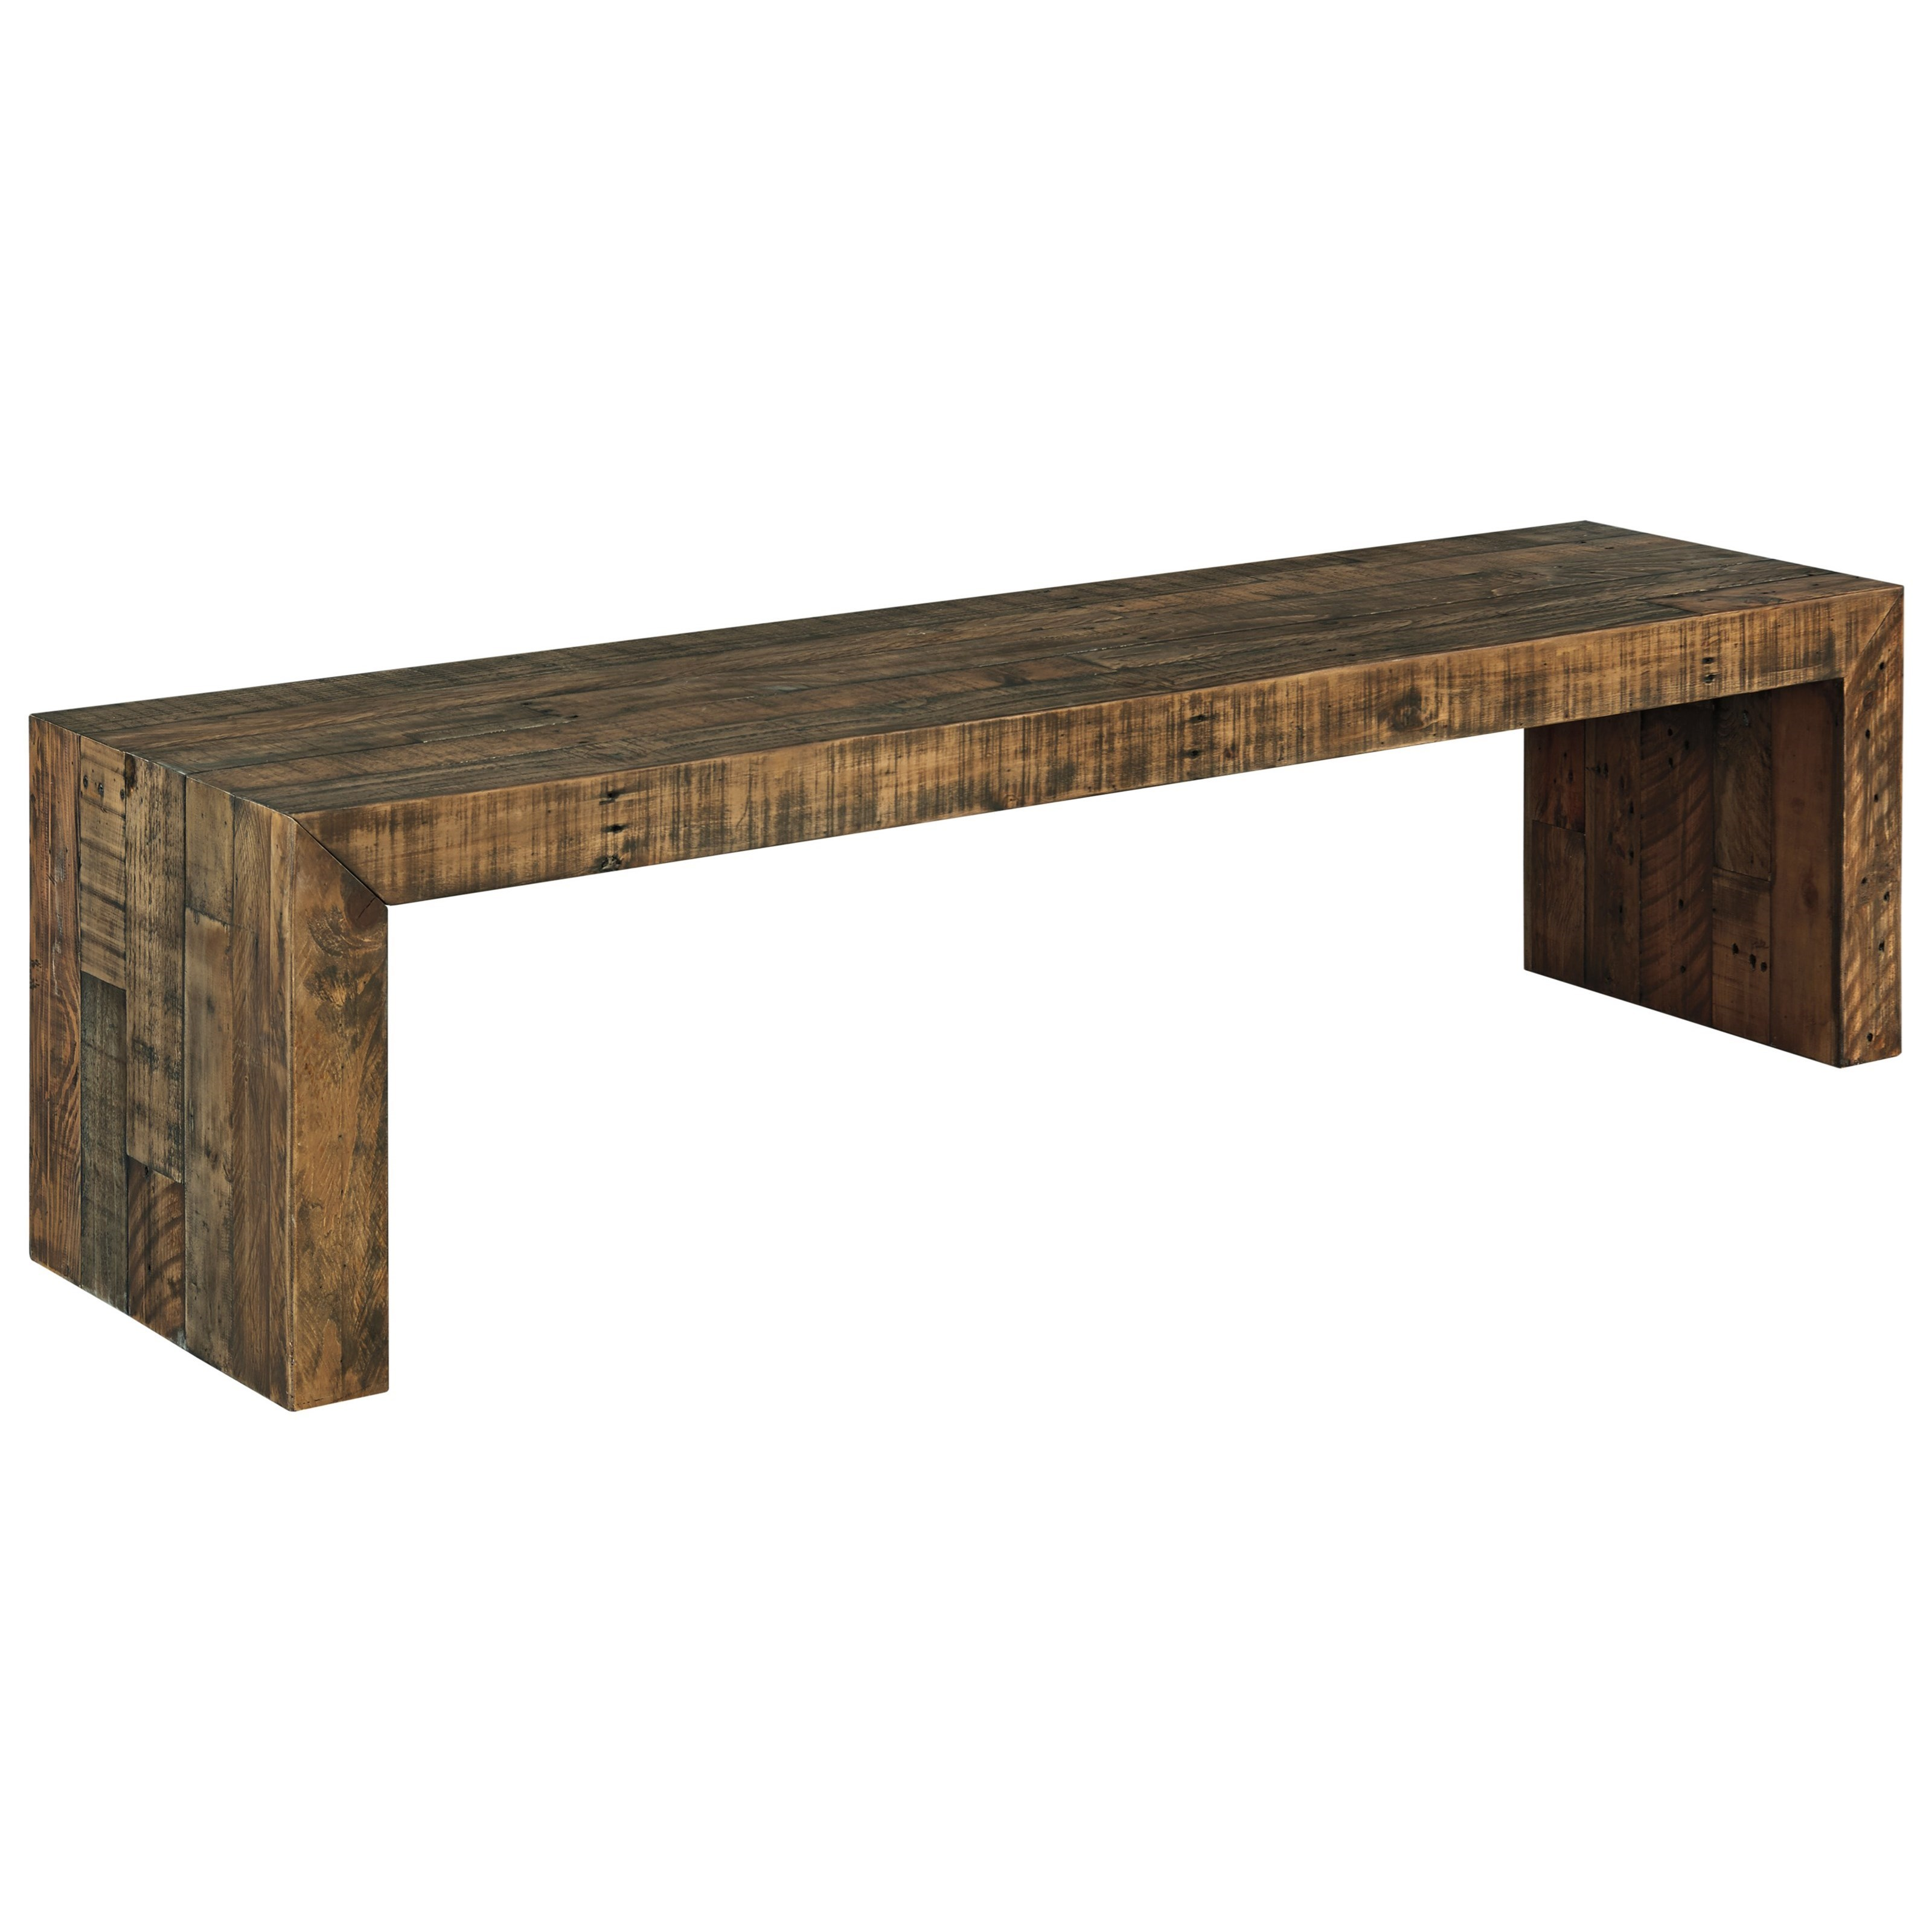 Sommerford Large Dining Room Bench by Ashley at Morris Home